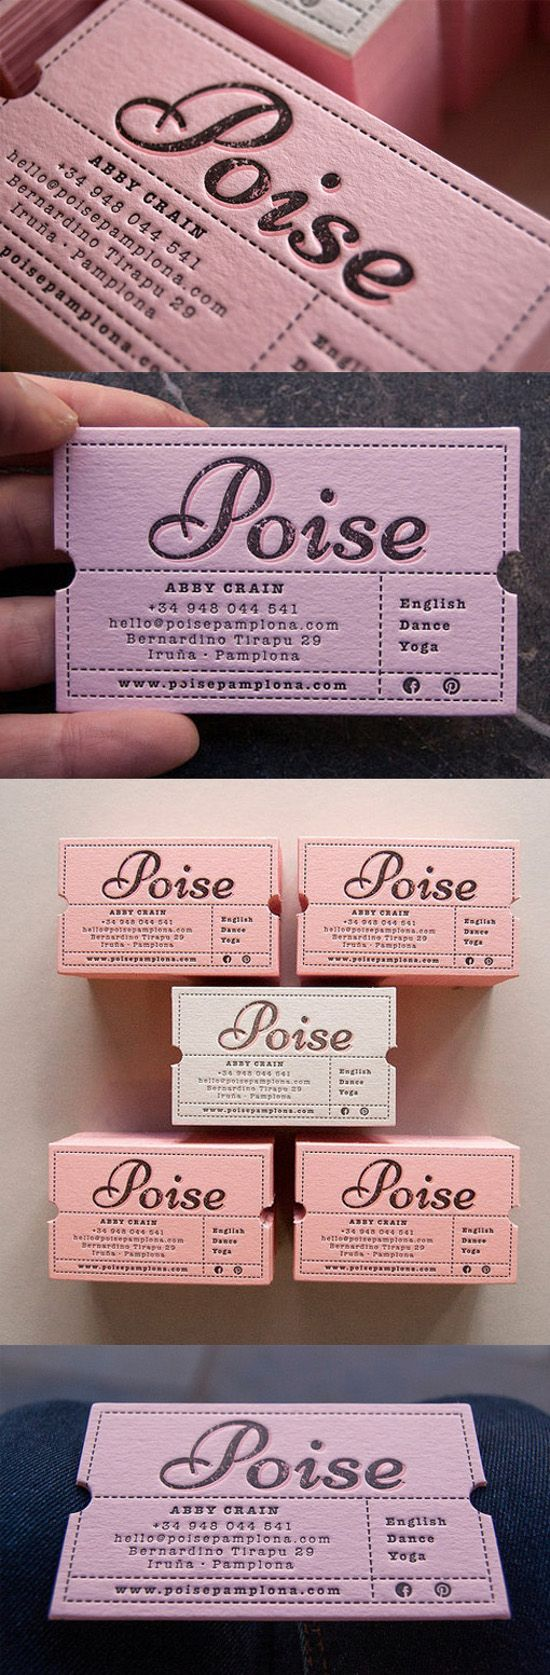 Custom Die Cut Vintage Ticket Style Letterpress Business Card For A Yoga Instructor